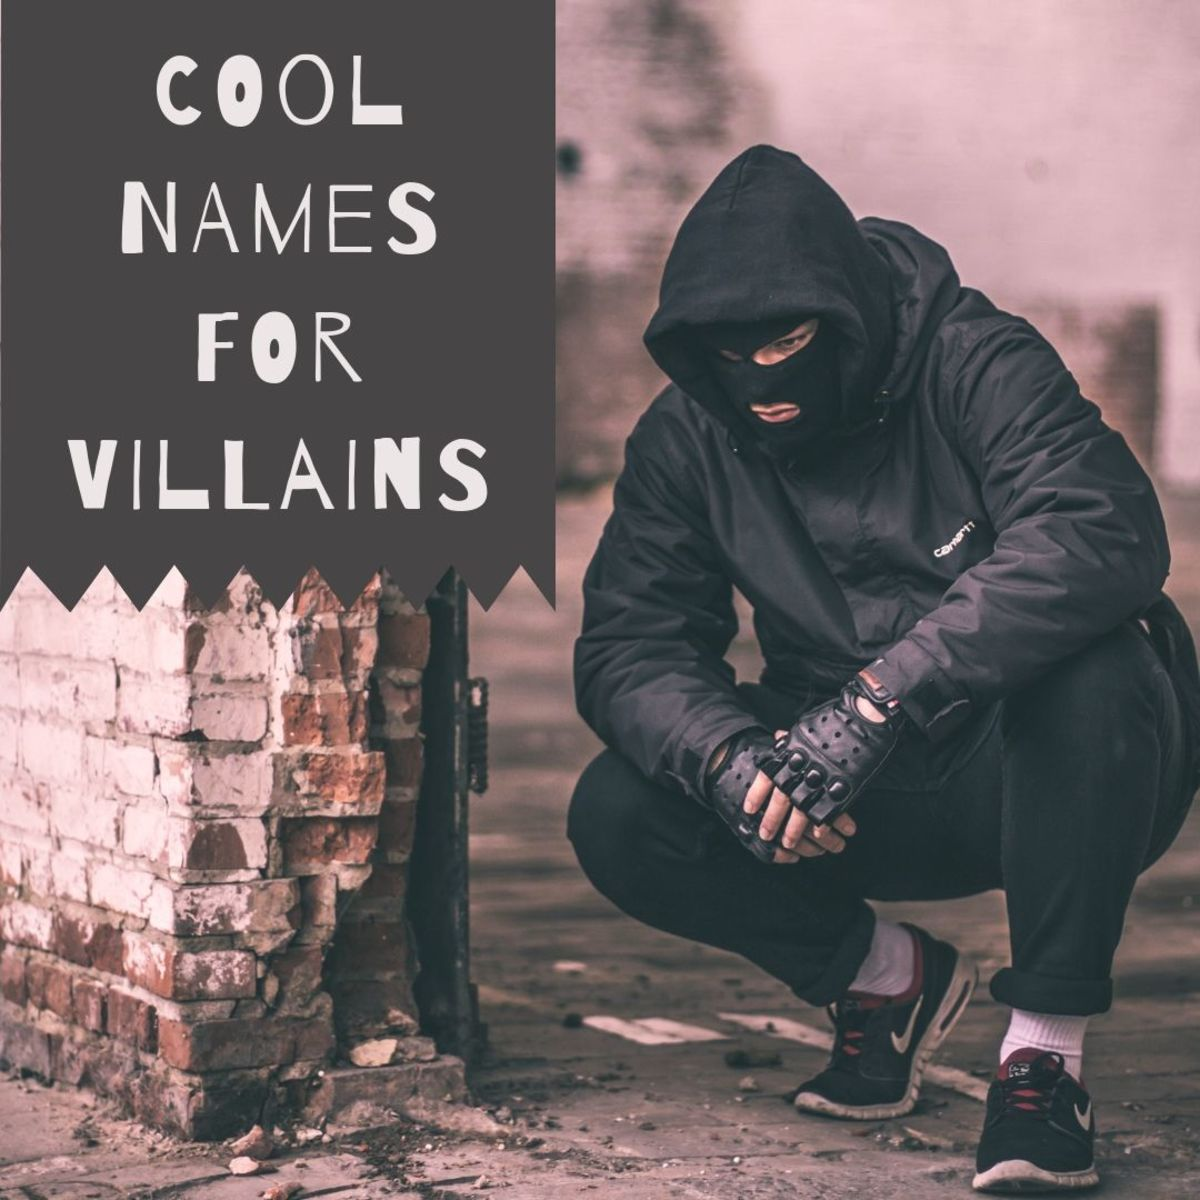 350+ Cool Villain Names: Being Bad Is More Fun Than Being Good